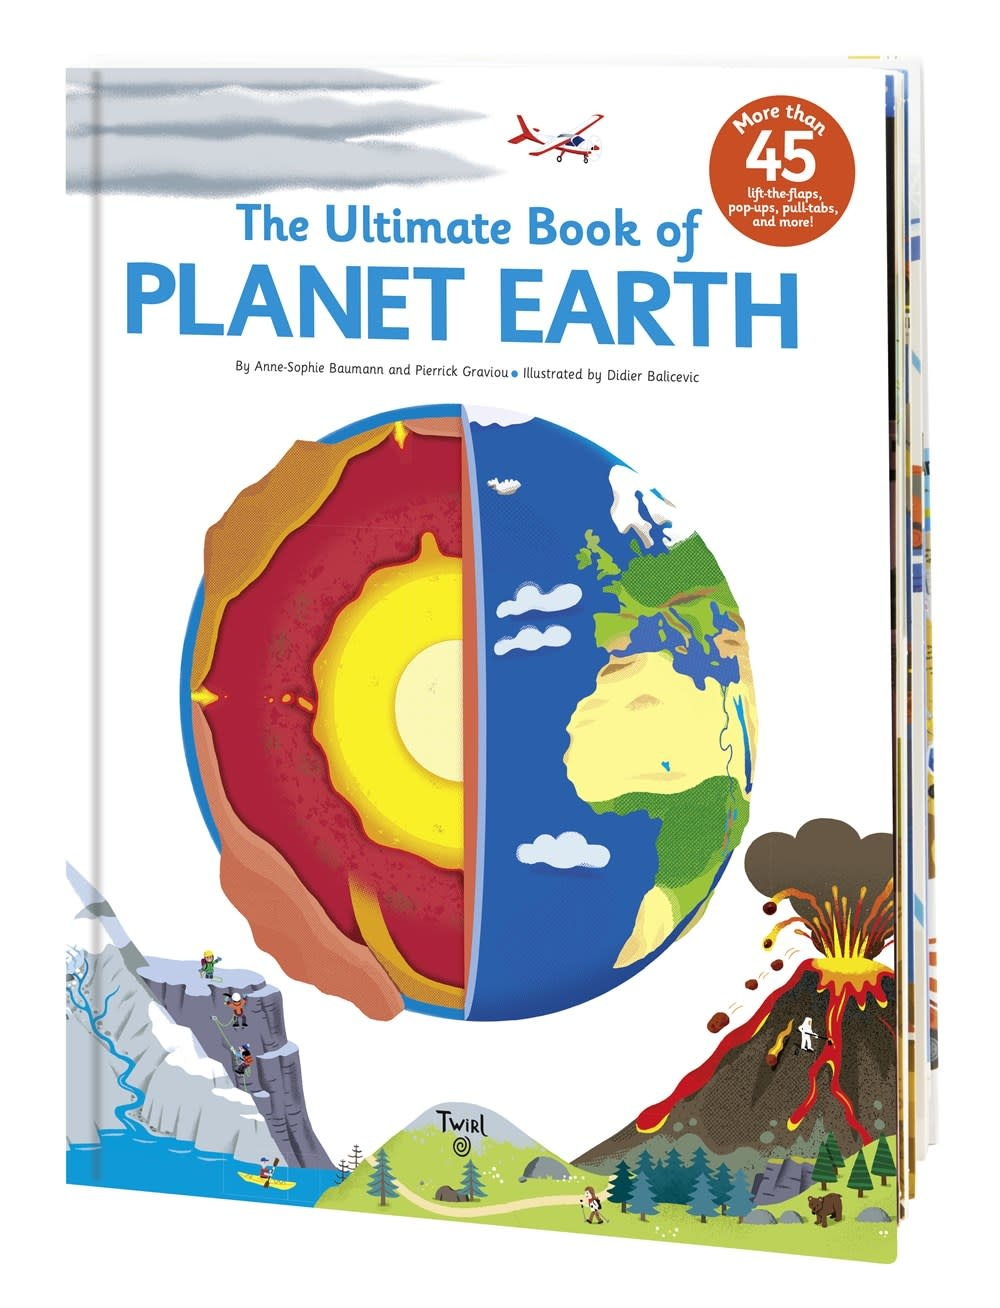 Twirl The Ultimate Book of Planet Earth